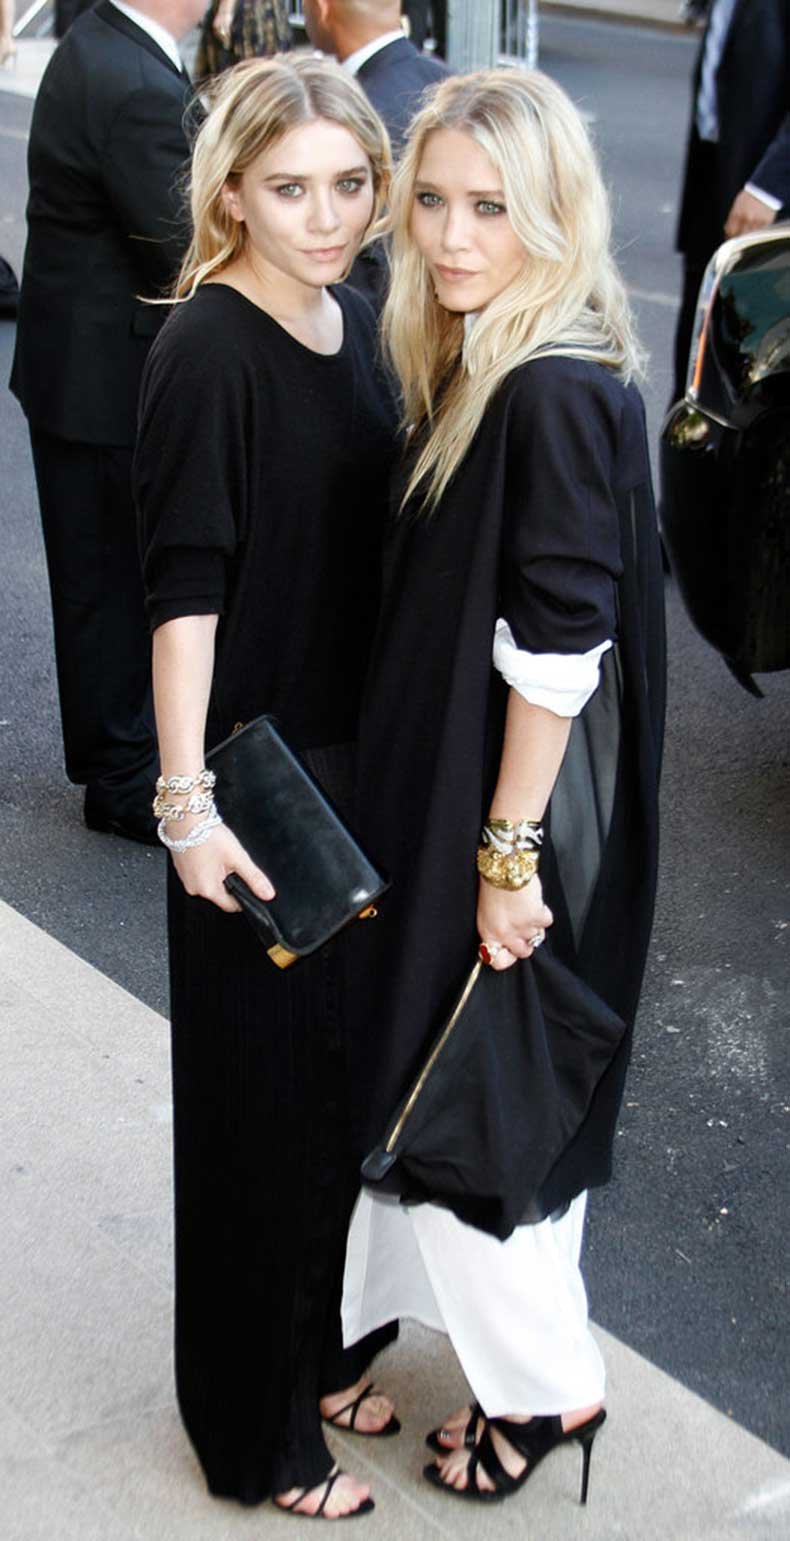 Twinning-combo-Stacks-bracelets-slick-black-clutches